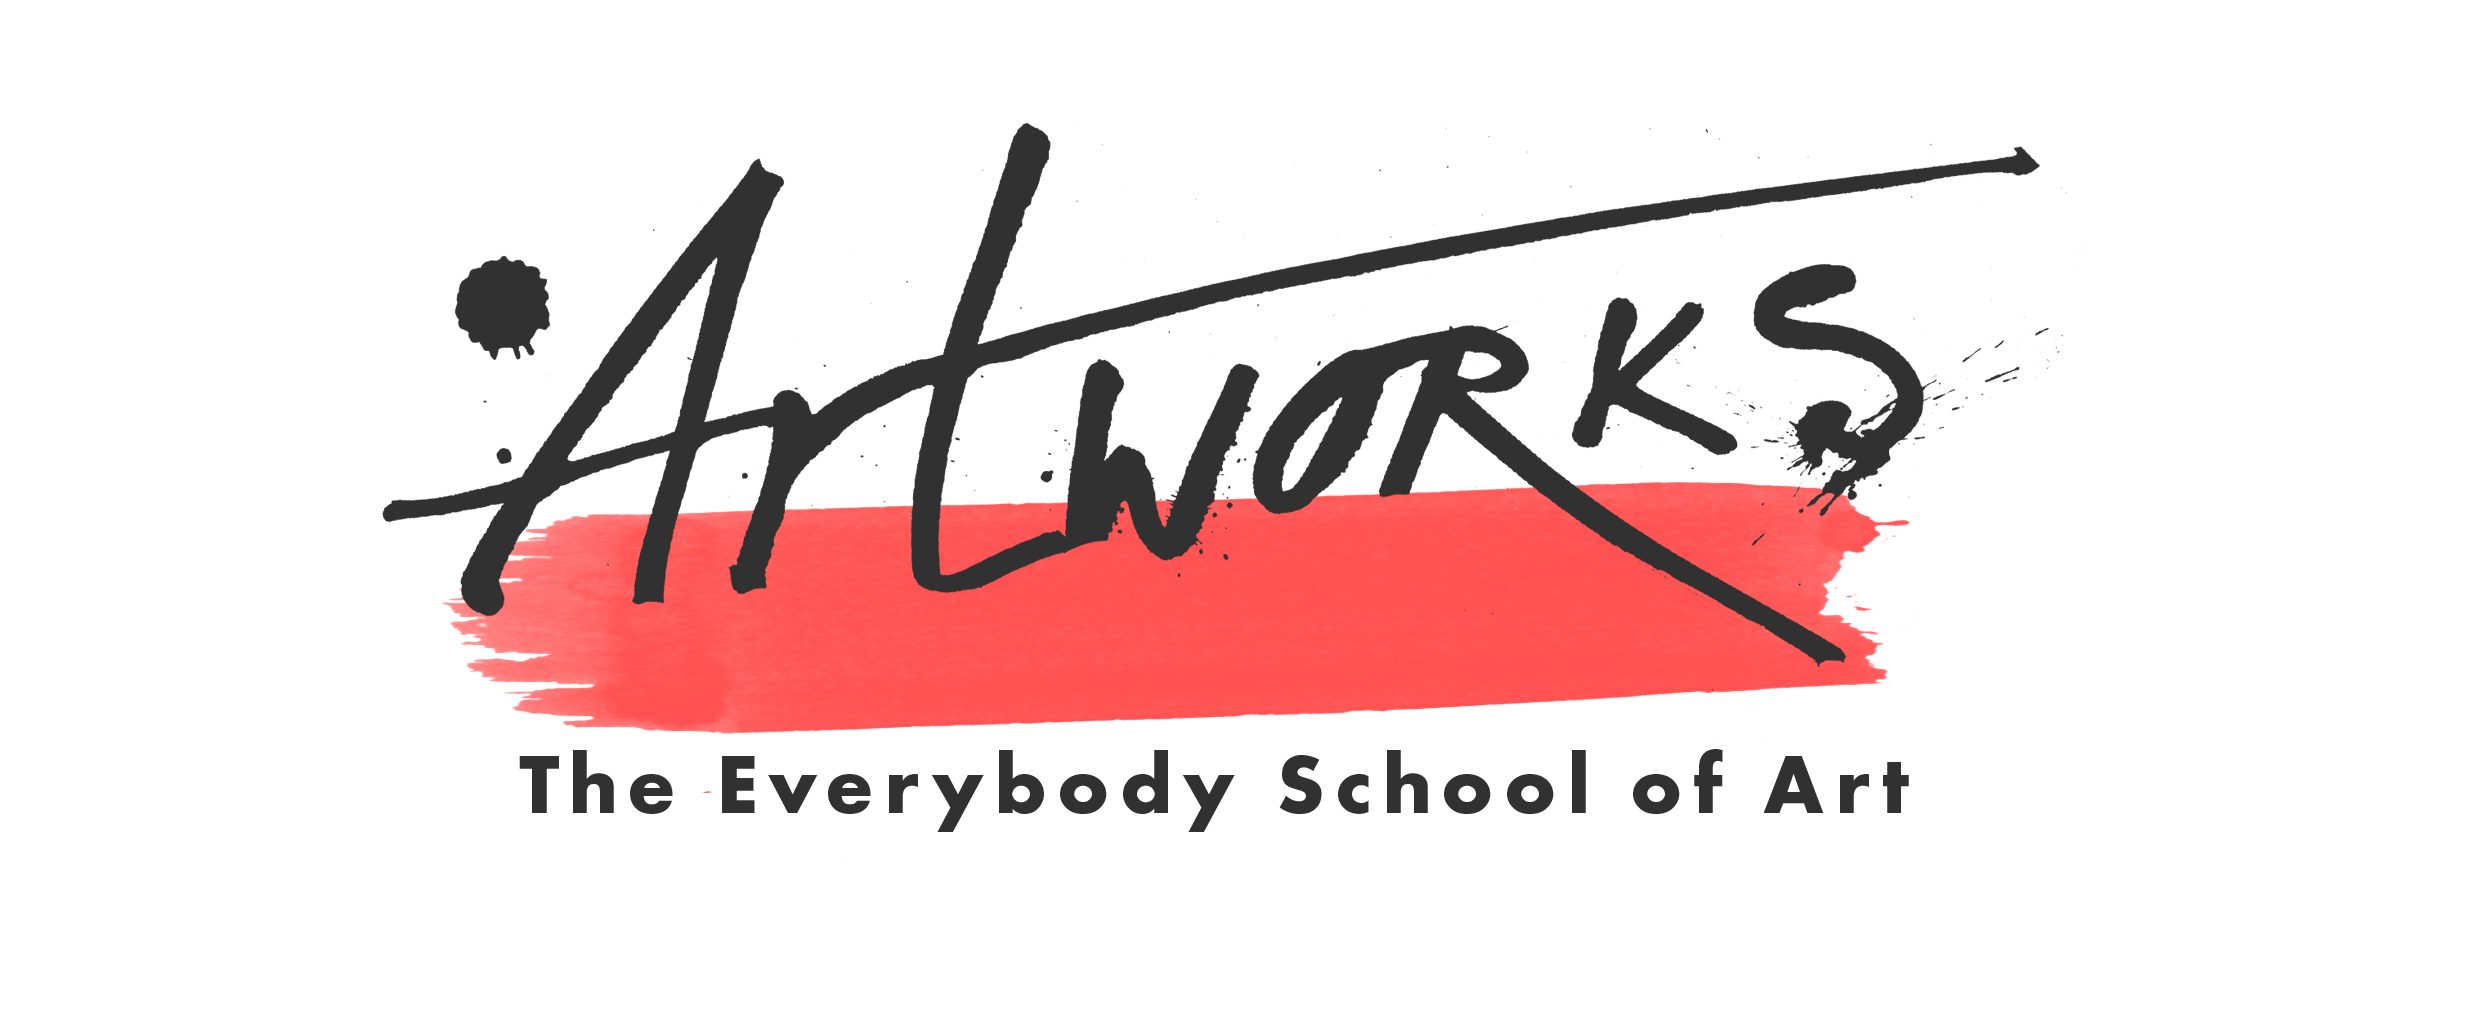 Artworks, The Everybody School of Art